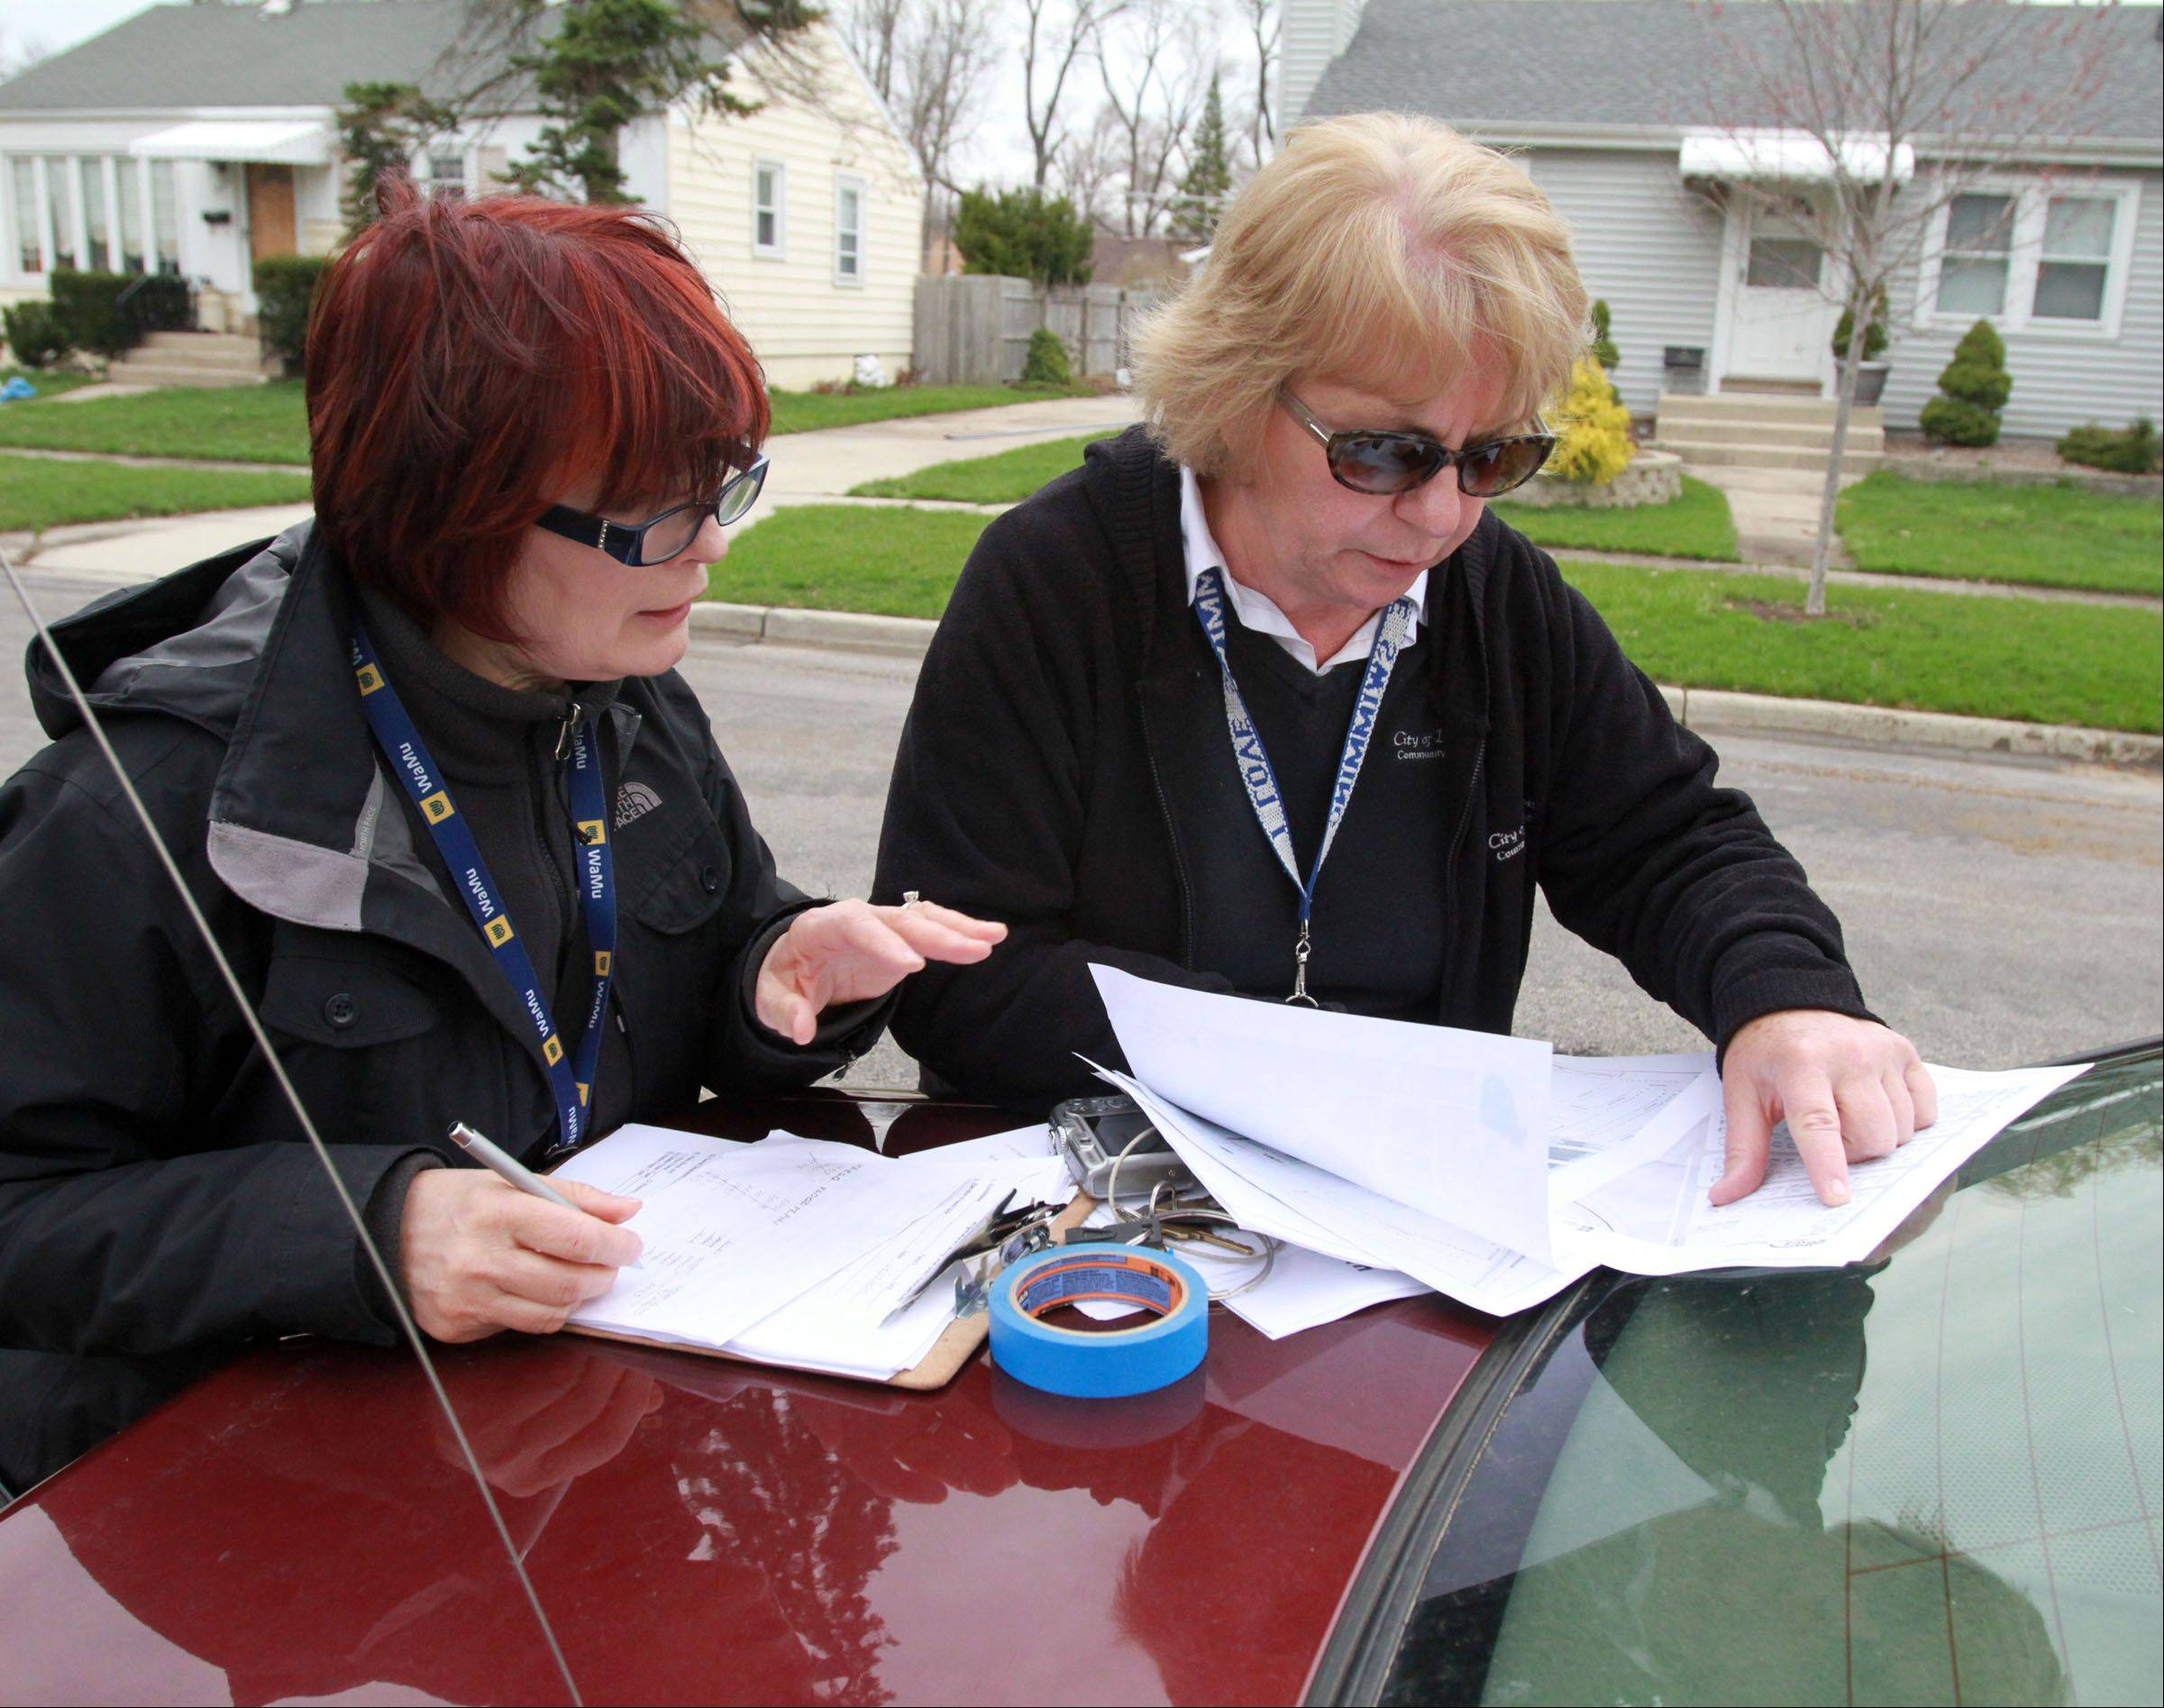 Des Plaines building inspectors Davorka Kirincic, left, and Pam Lunsmann check a map on Fargo Avenue before going door-to-door checking homes for flood damage in Des Plaines Tuesday.